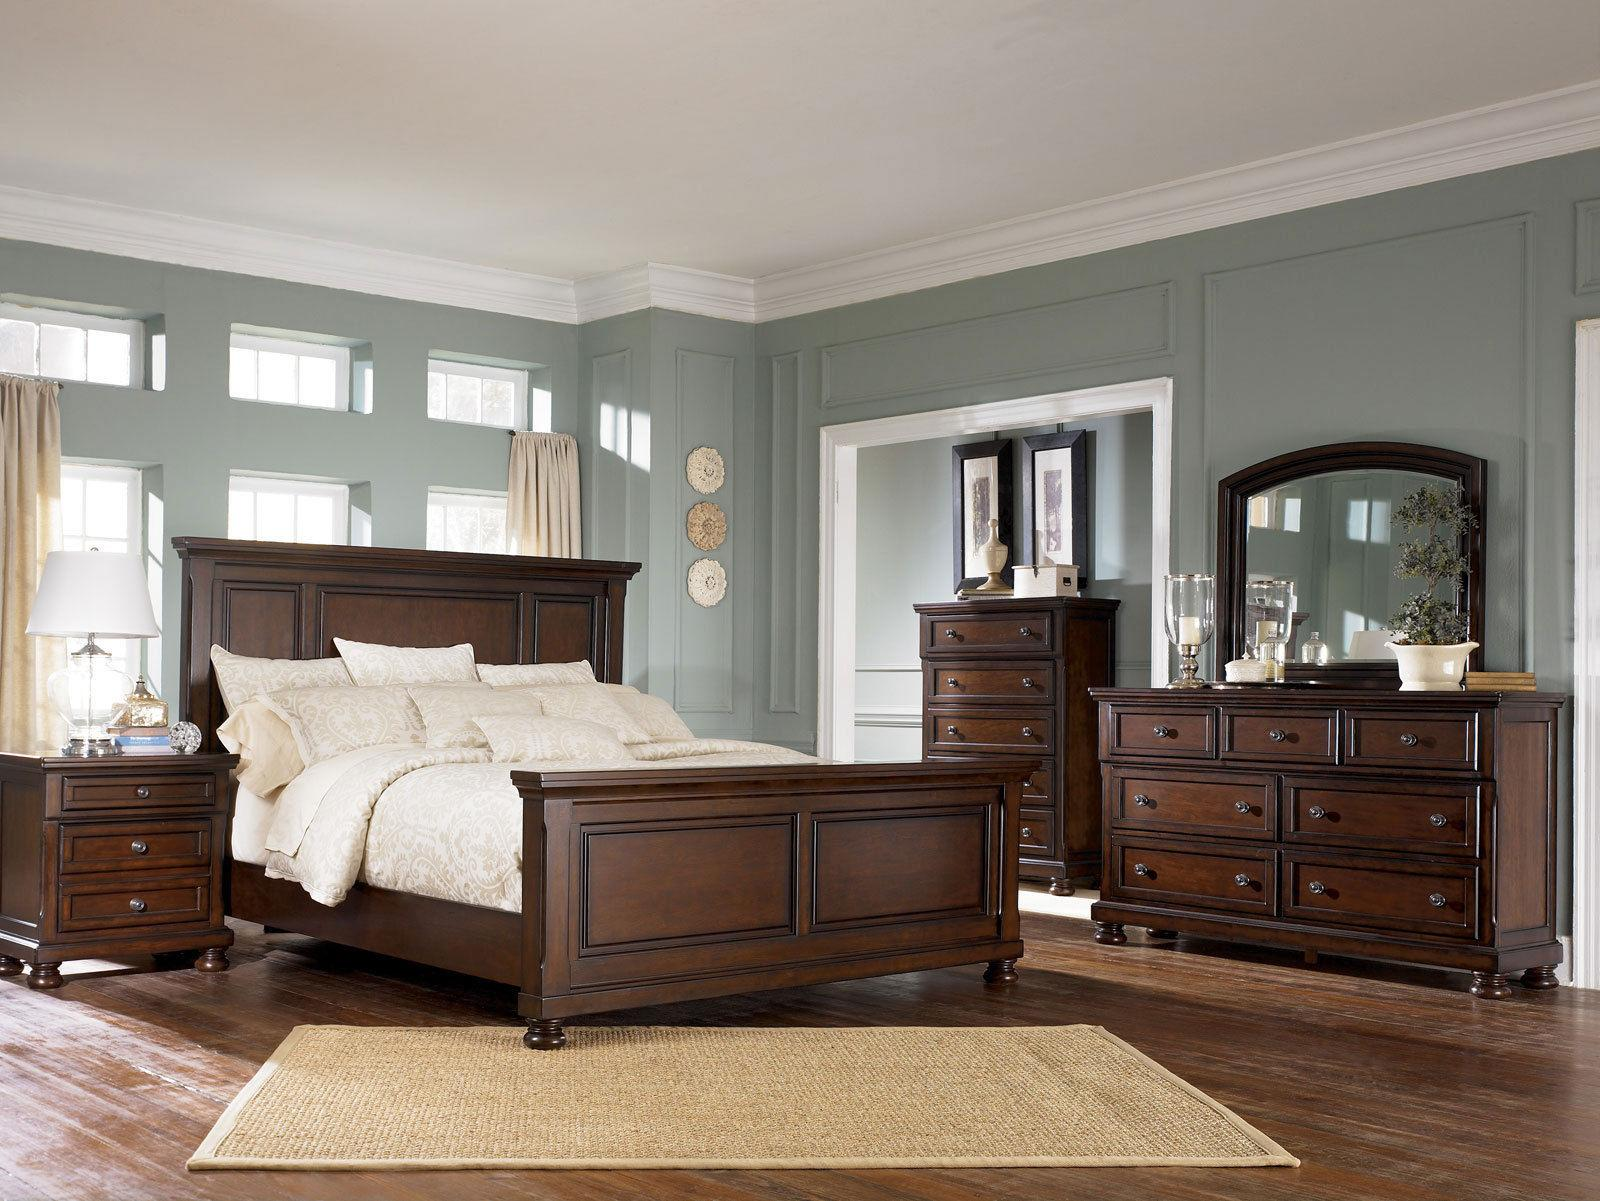 Ashley Furniture B697 Porter-Traditional Queen King Panel Be